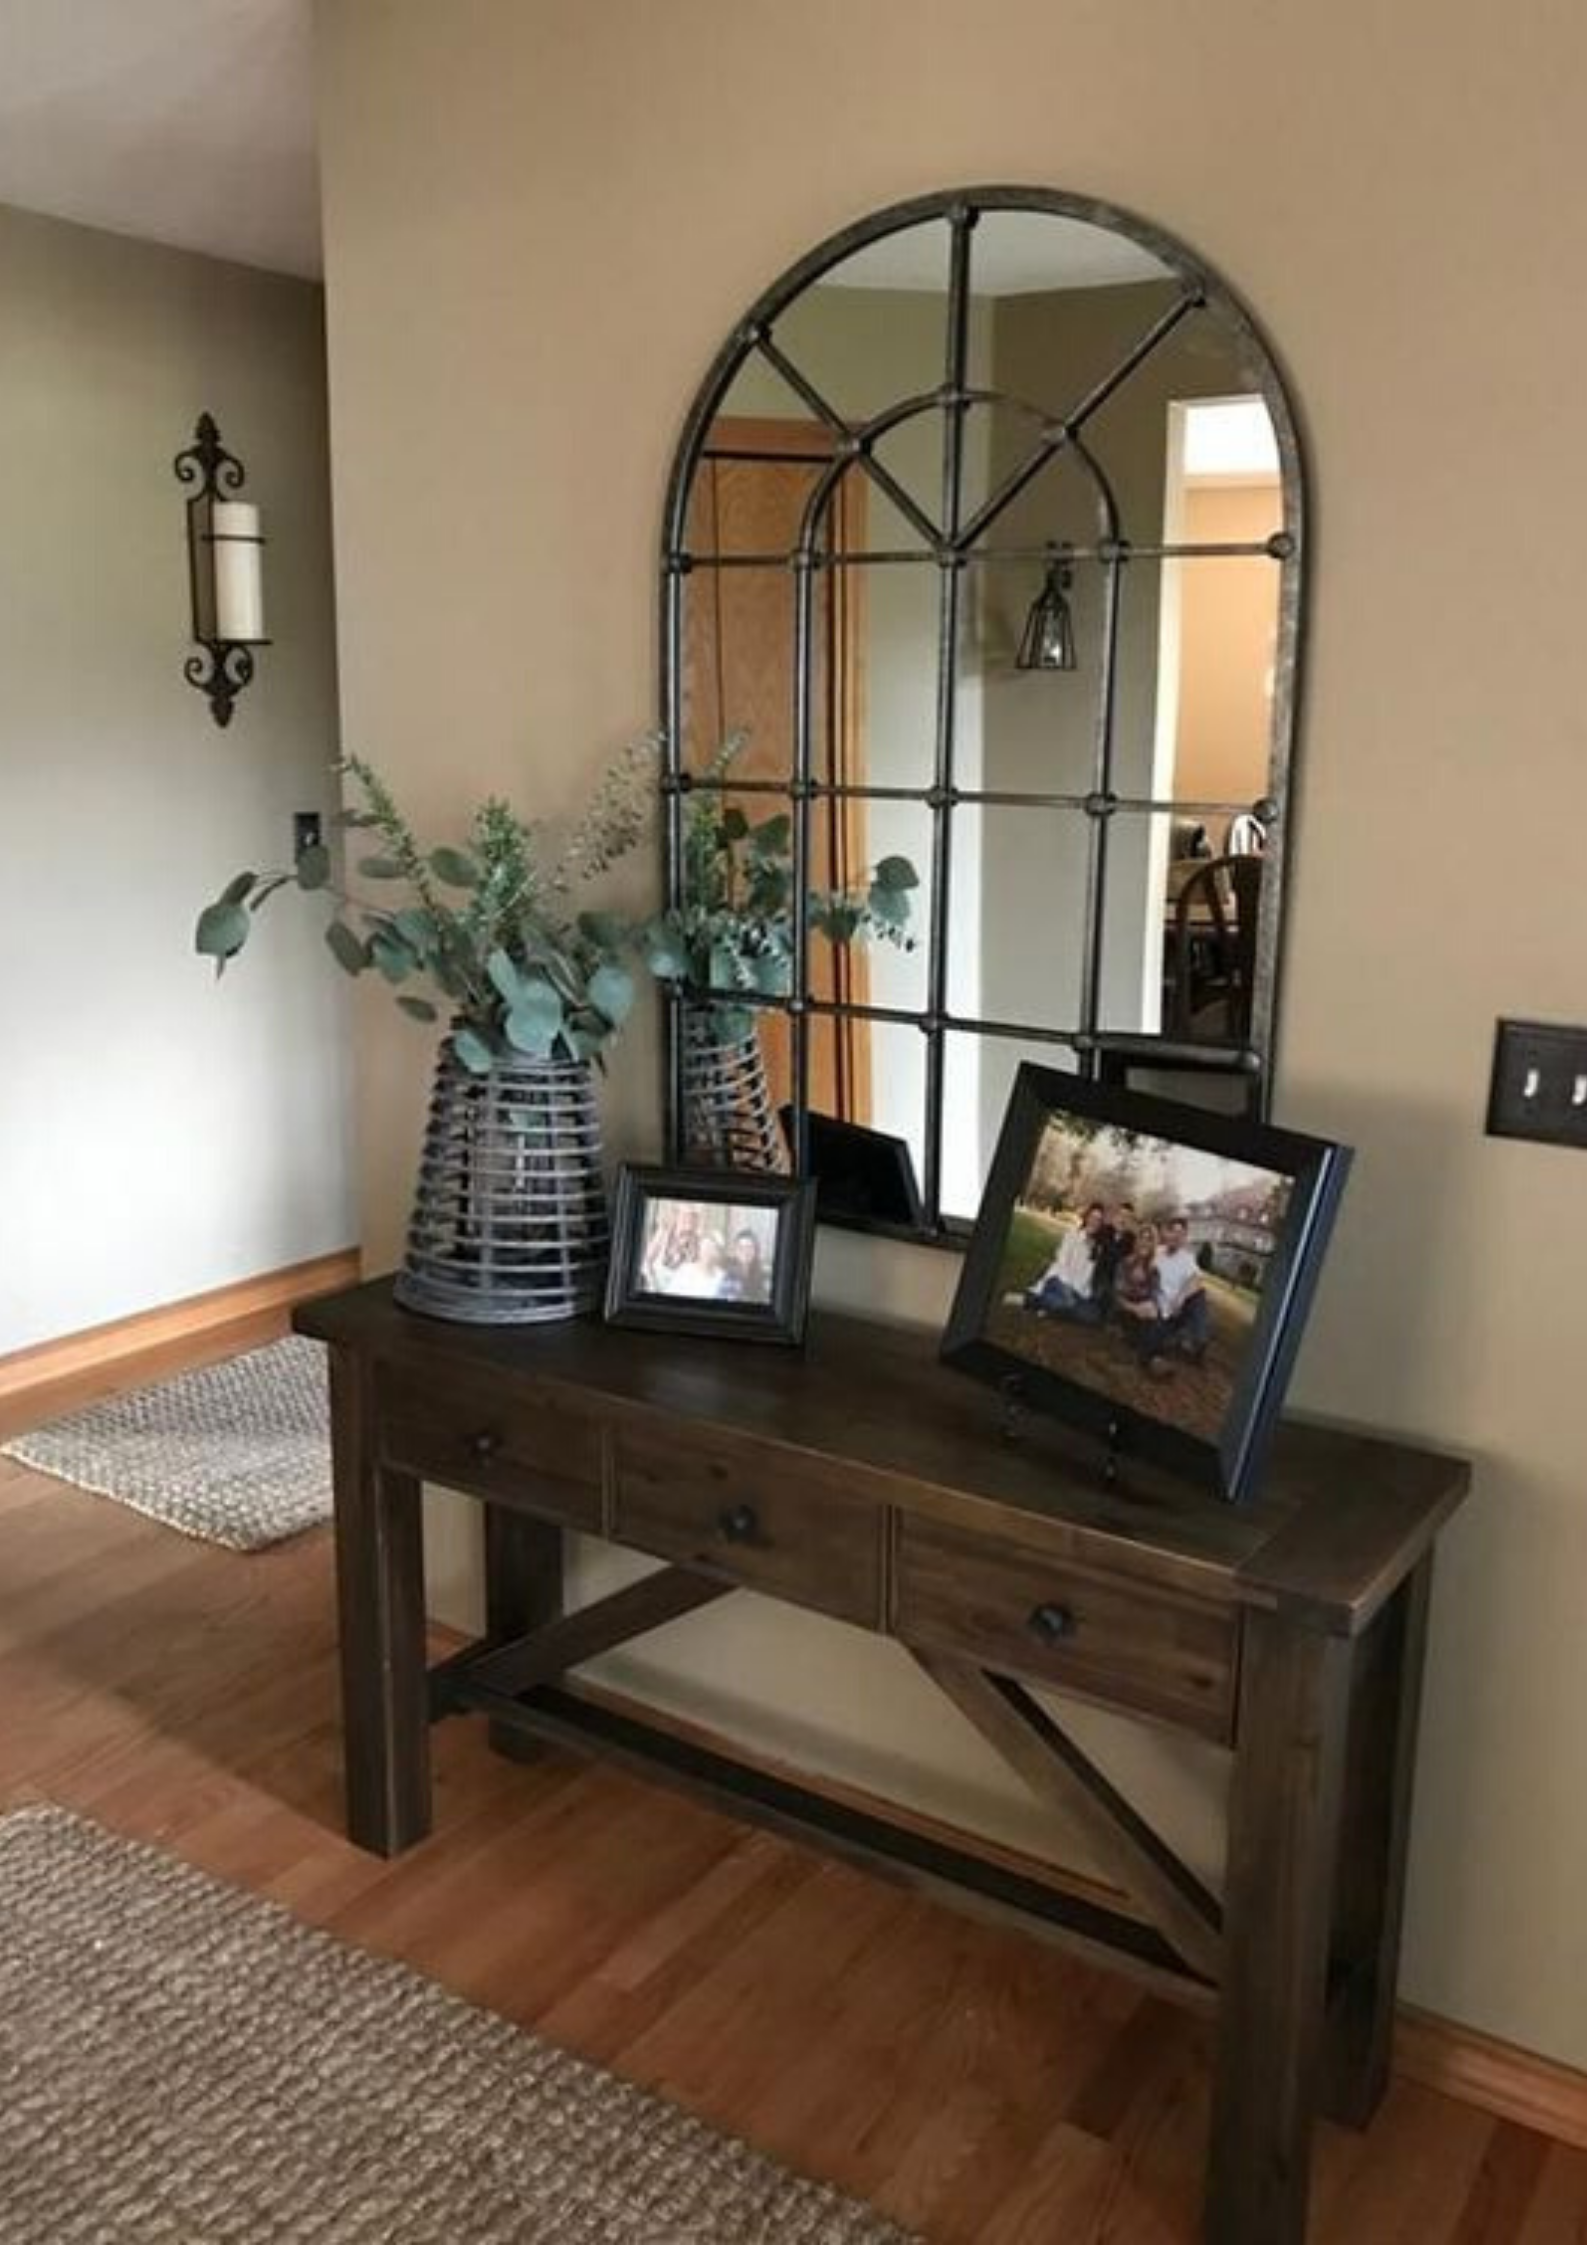 16 most recommended entry table ideas design tips in on small entryway console table decor ideas make a statement with your home s entryway id=16886